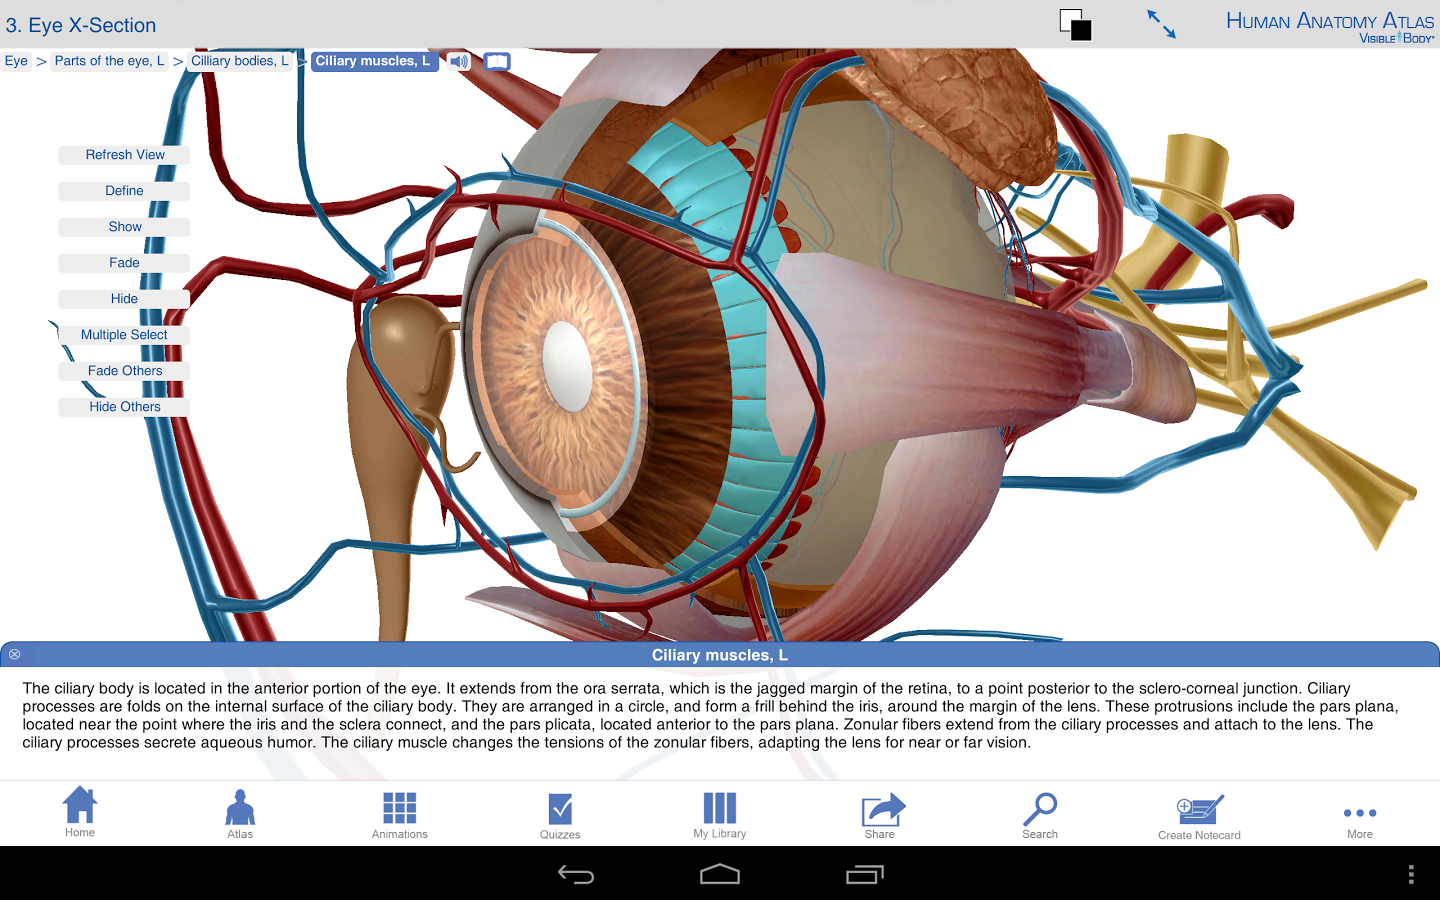 Human anatomy atlas android hack